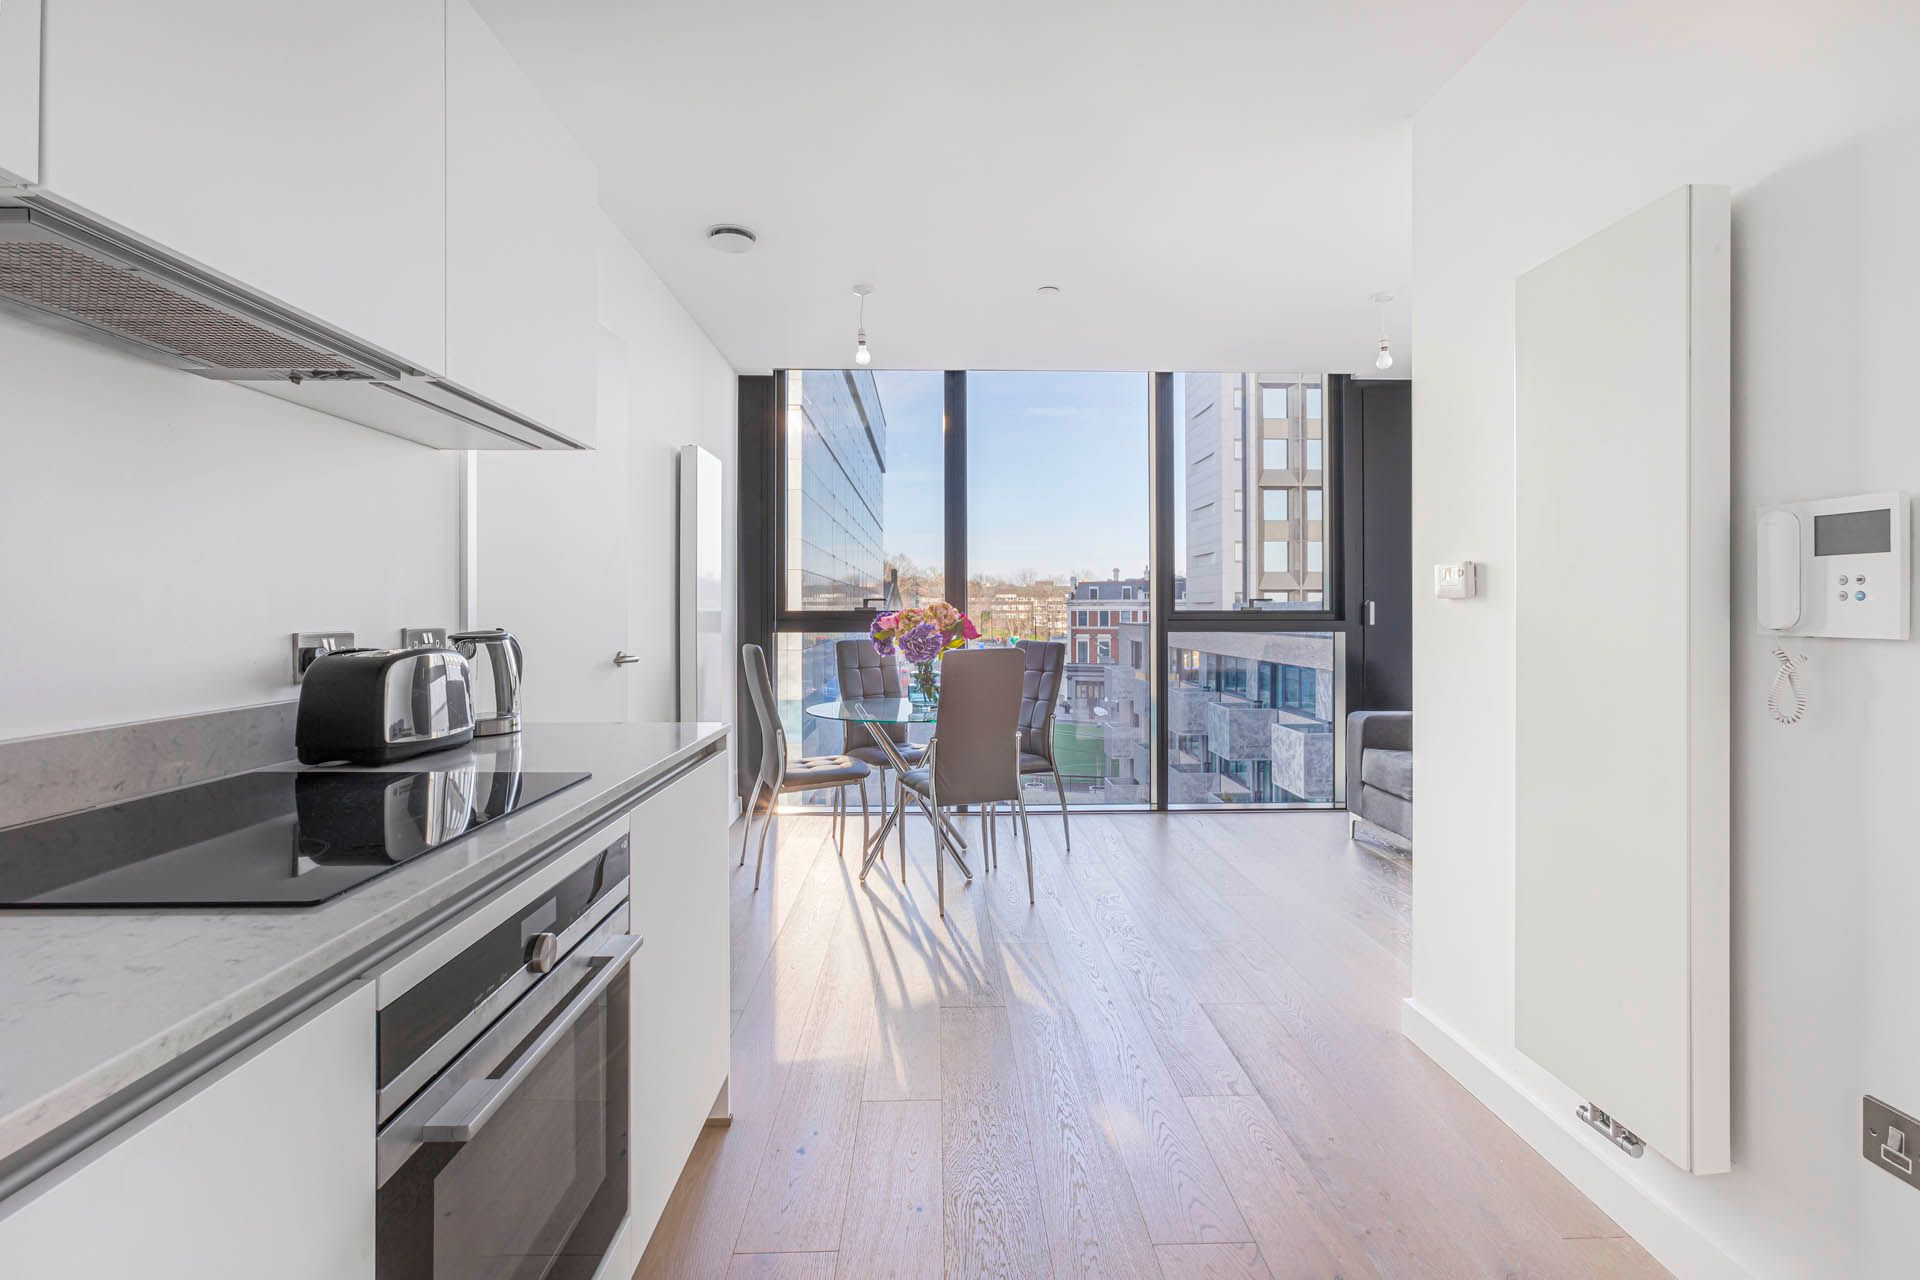 1 Bedroom apartment to rent in London HIL-HH-0406